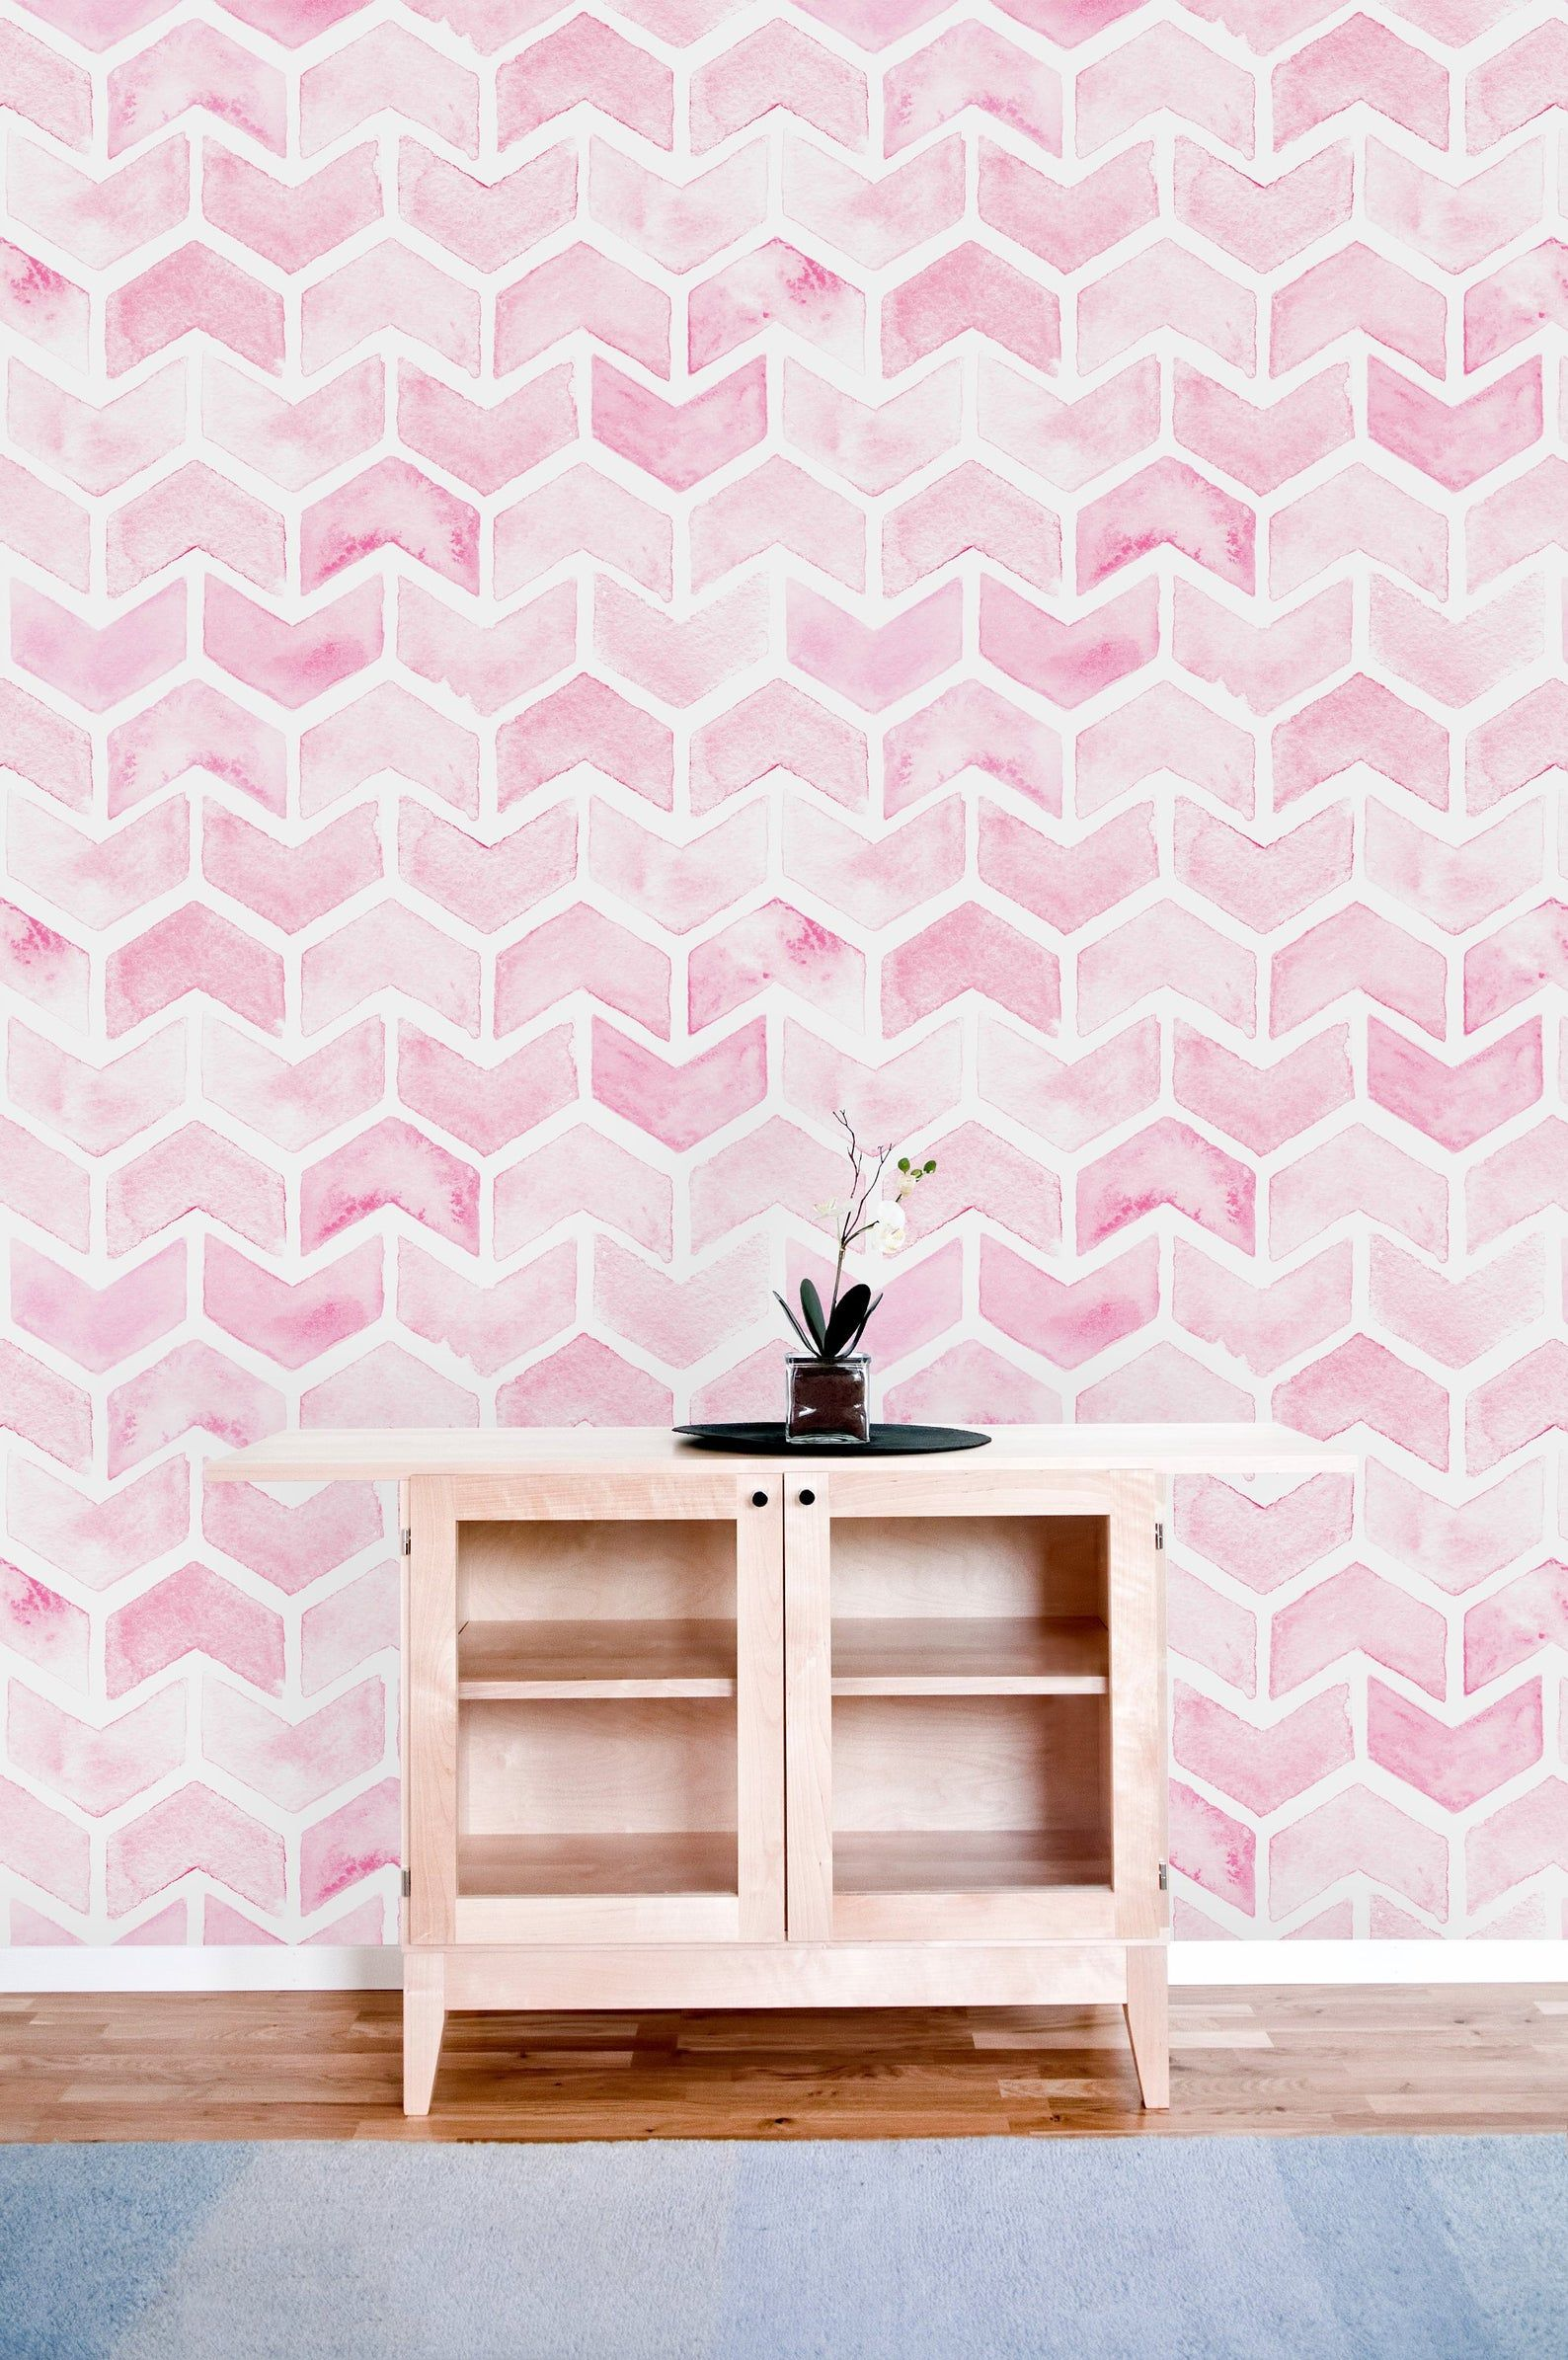 Pink Chevron Removable Wallpaper Peel And Stick Wallpaper Wall Etsy Peel And Stick Wallpaper Pink Chevron Wallpaper Wall Wallpaper